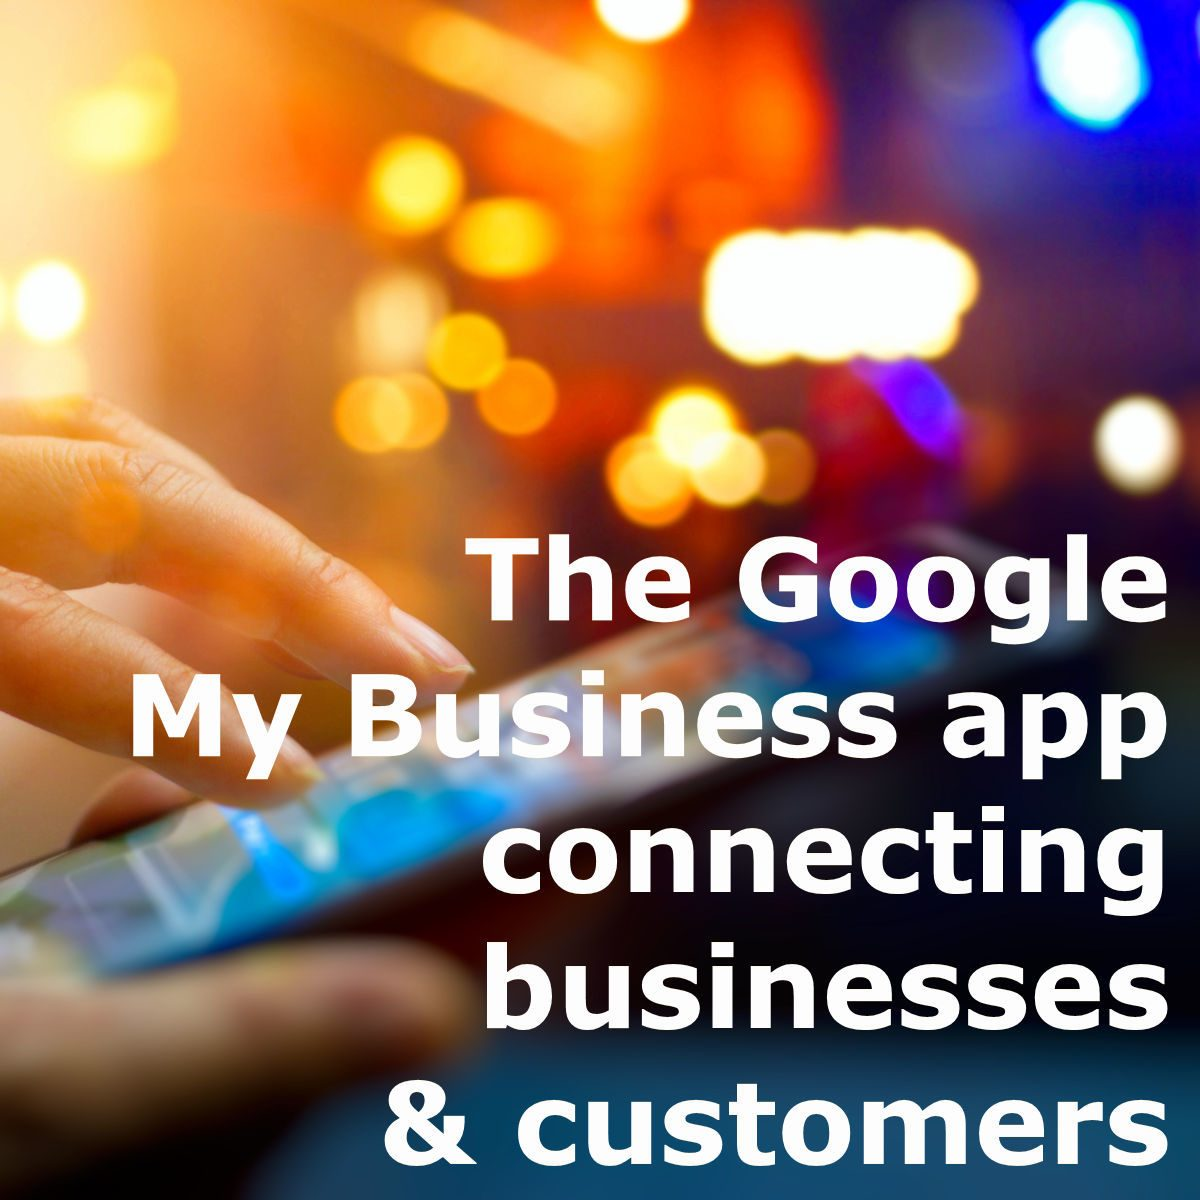 The Google My Business app is connecting businesses and